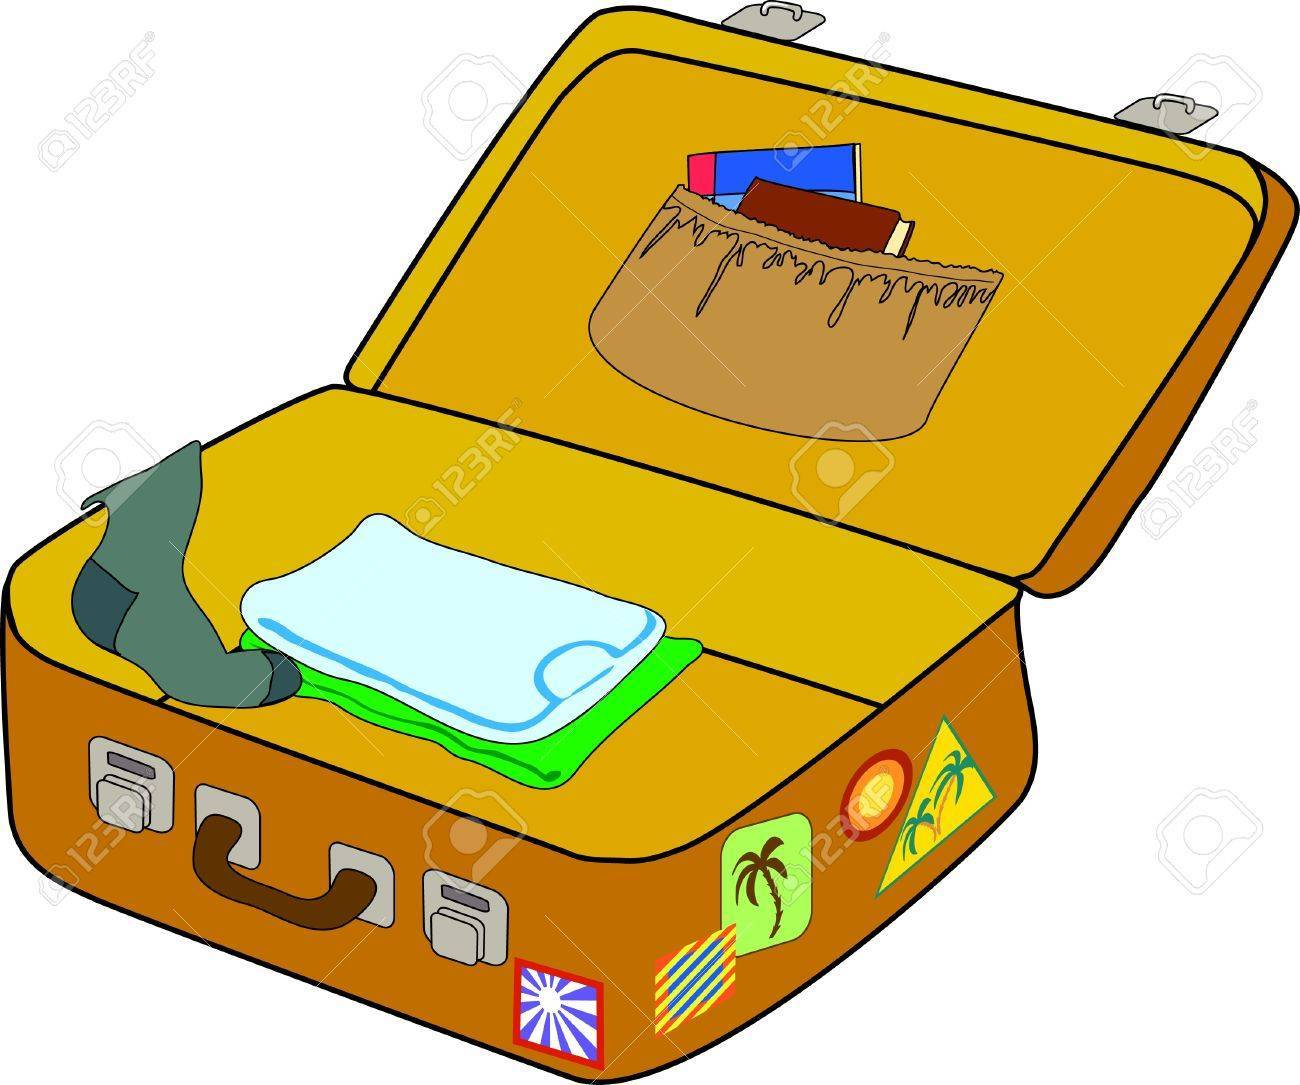 Pack suitcase clipart vector free Packing suitcase clipart 9 » Clipart Portal vector free